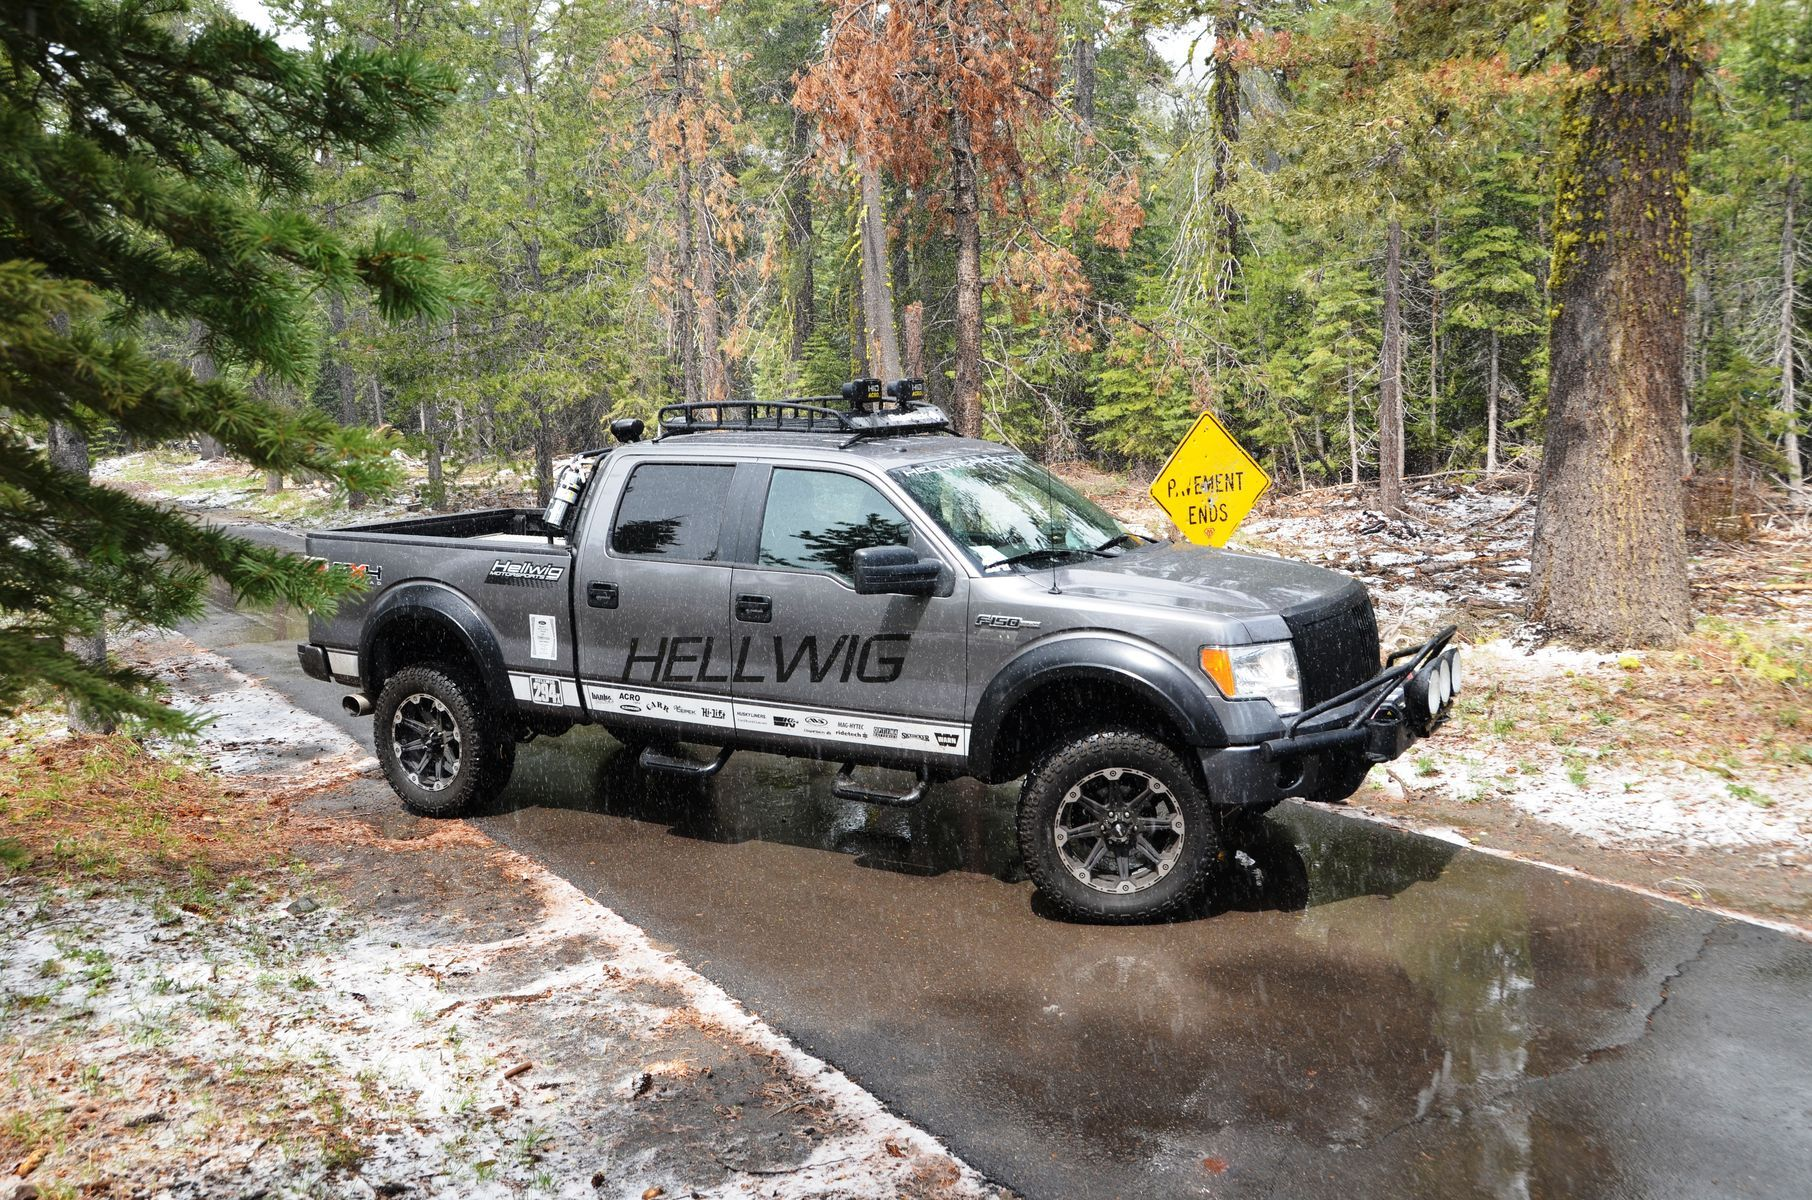 2009 Ford F-150 | Hellwig F150 at the Rubicon